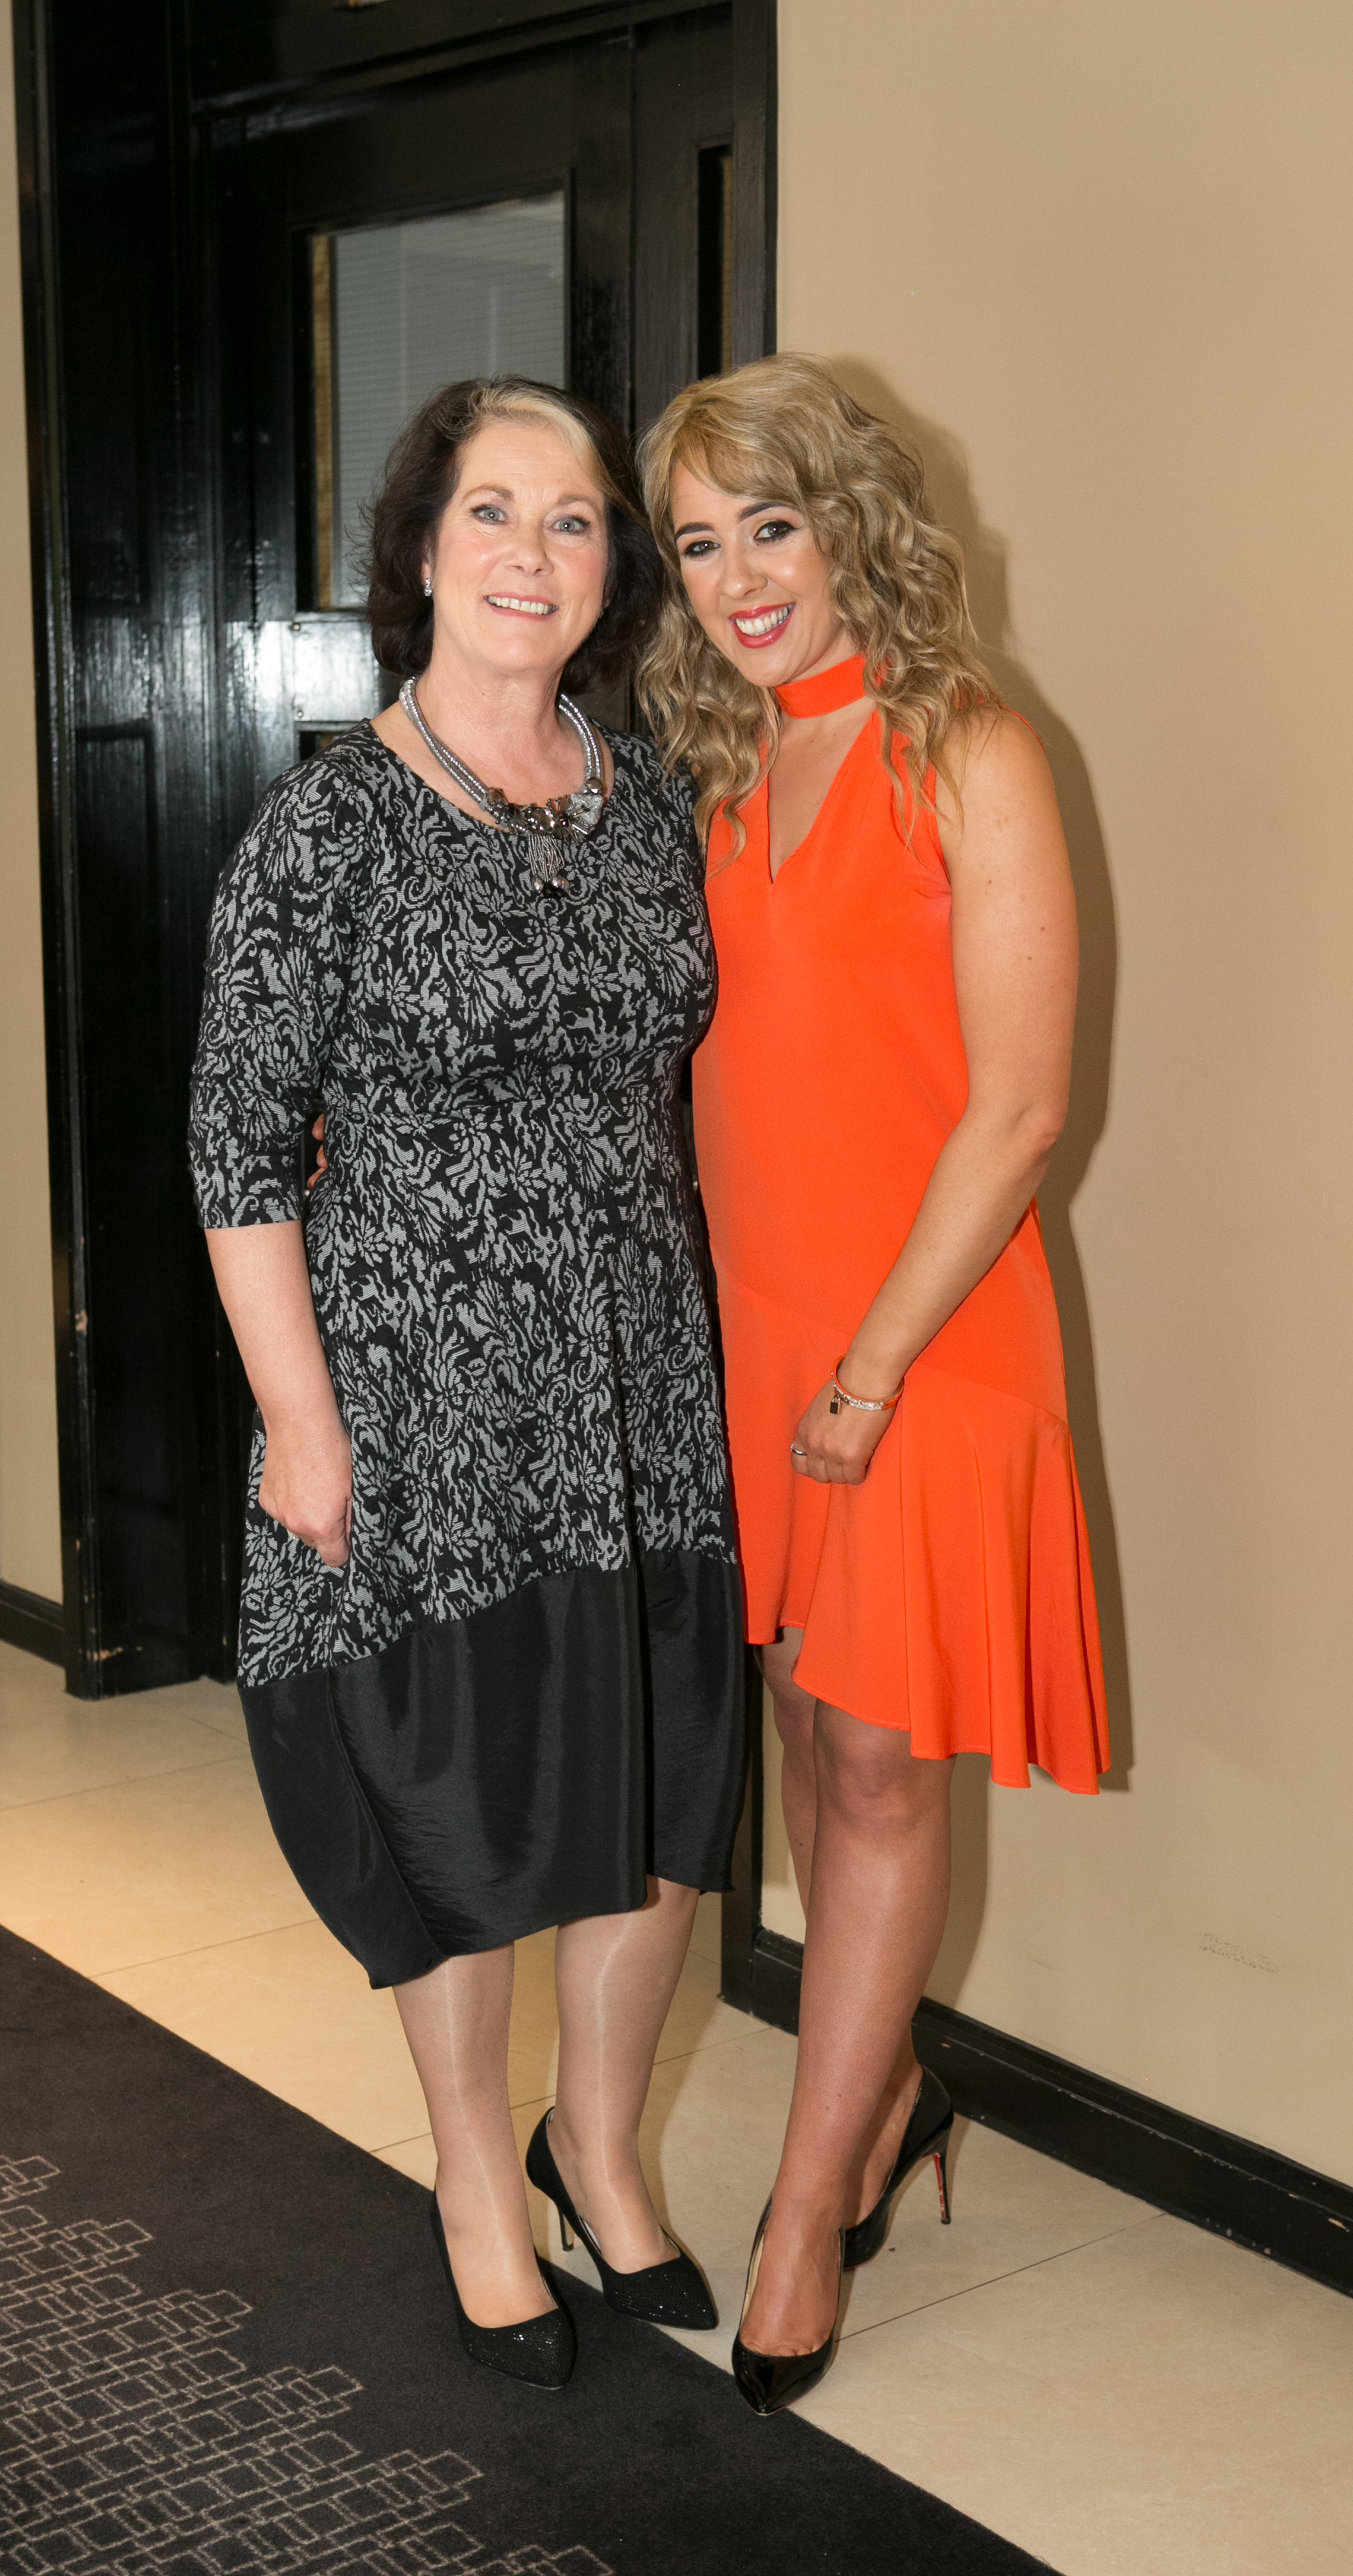 Aer Lingus staff members; Geraldine Gokul and Jo O'Riordan attending the Annual Aer Lingus Autumn Lunch in aid of Cork ARC Cancer Support House.